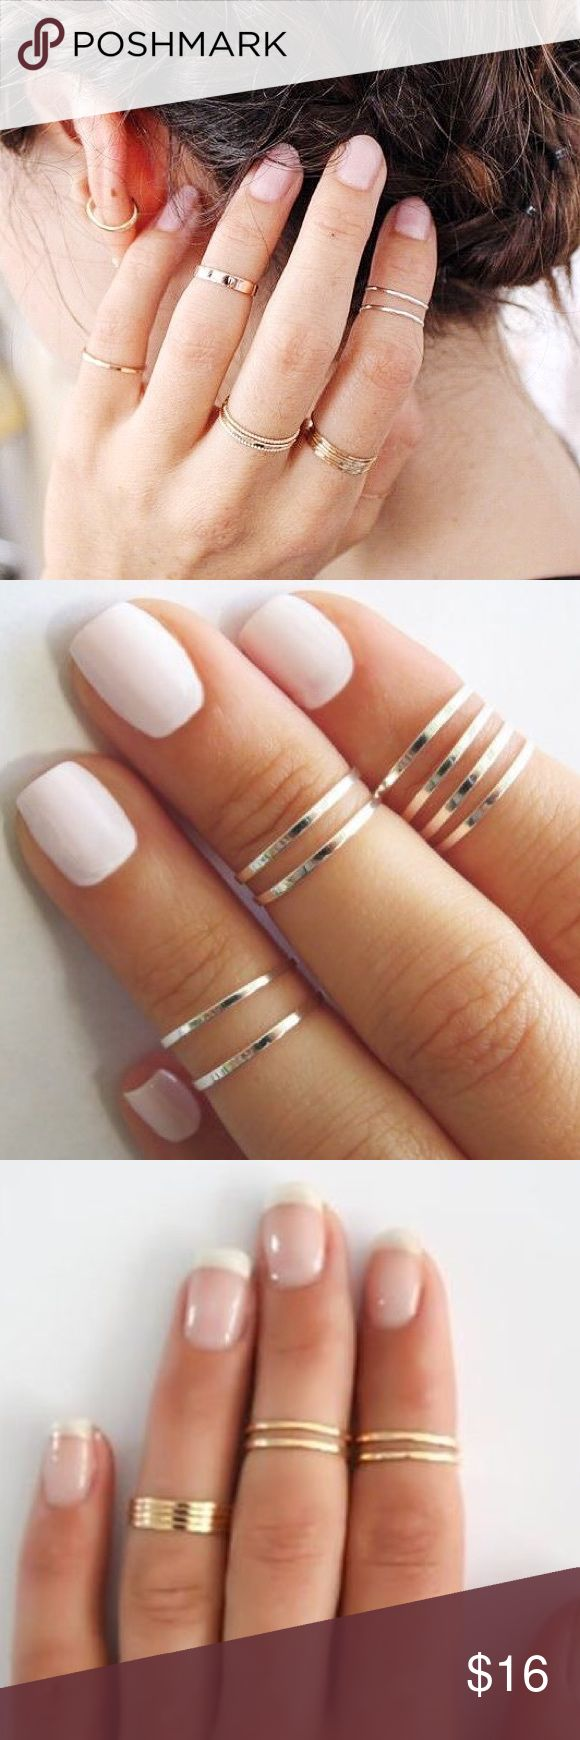 Set of 5 Midi Rings Set of 5 midi rings in either gold tone or silver tone.  Stack with other rings to complete your boho look!  NWOT, never worn.  Boutique brand.  Listing is for one set of 5 rings. Charm City Jewelry Rings